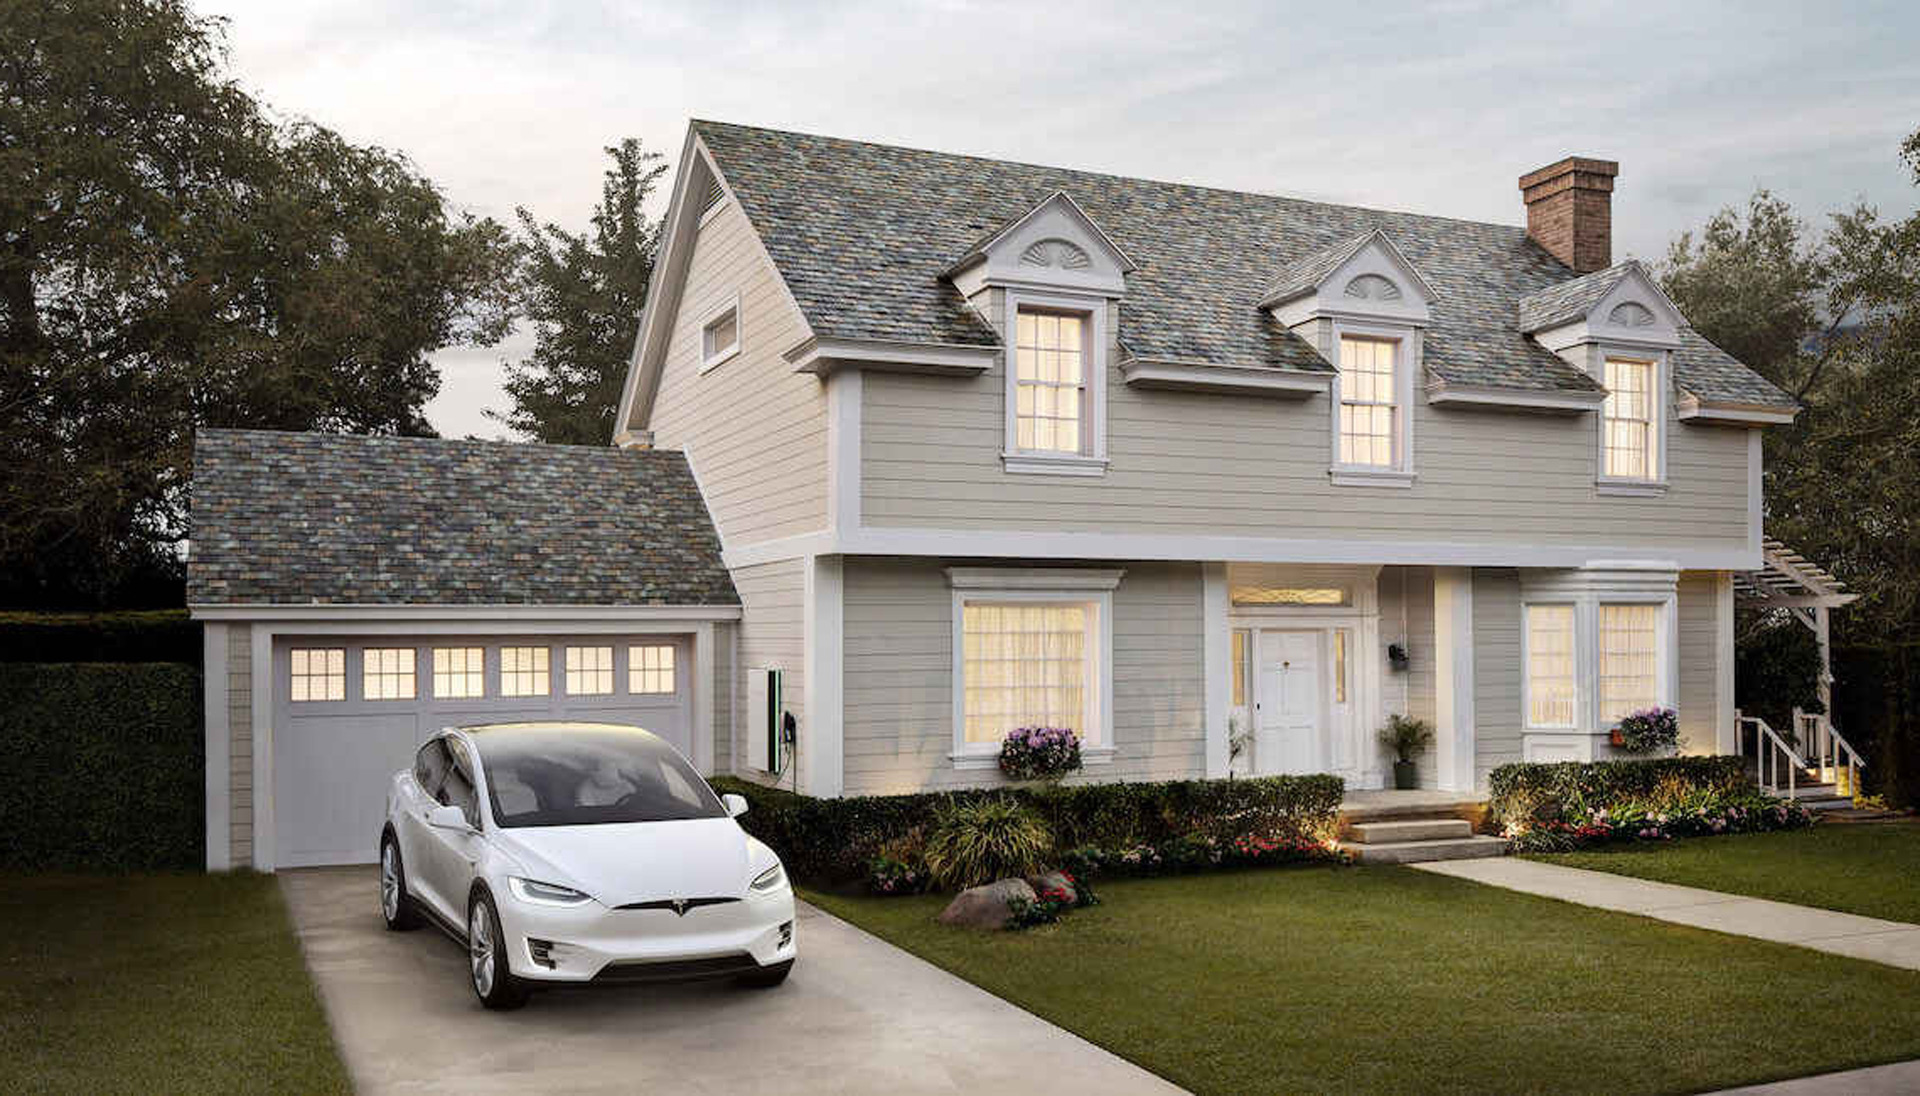 Tesla's share of the home-solar market continues to slide